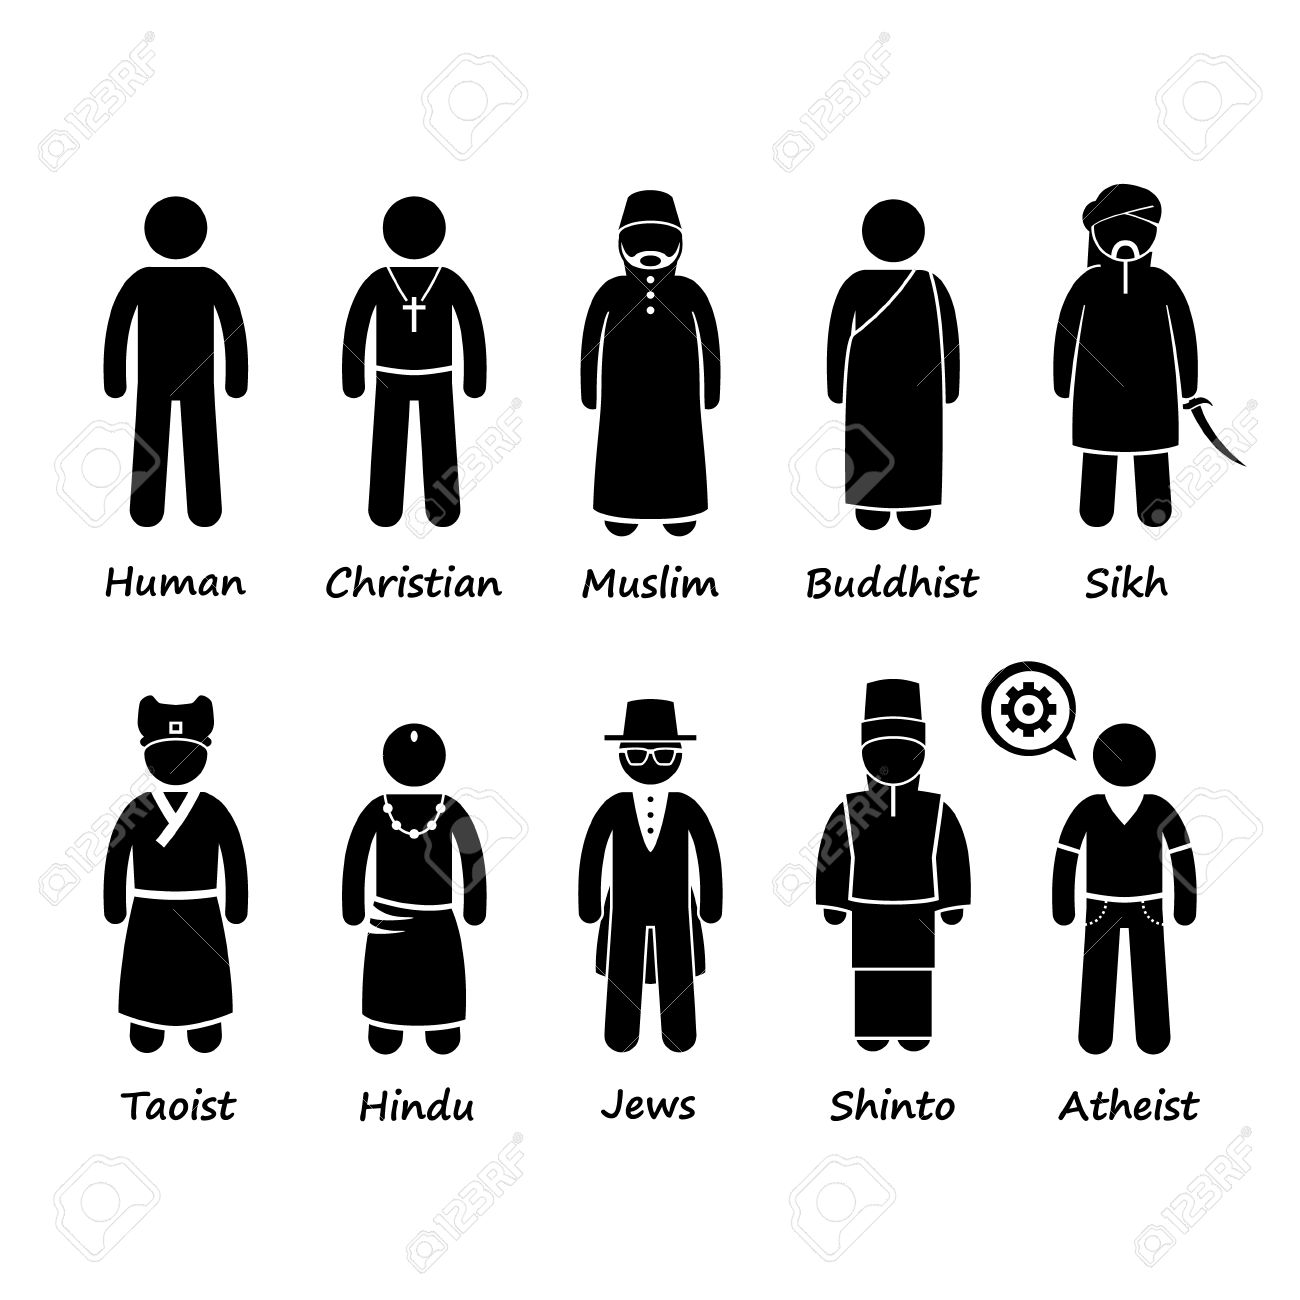 Religion Of People In The World Stick Figure Pictogram Icon.